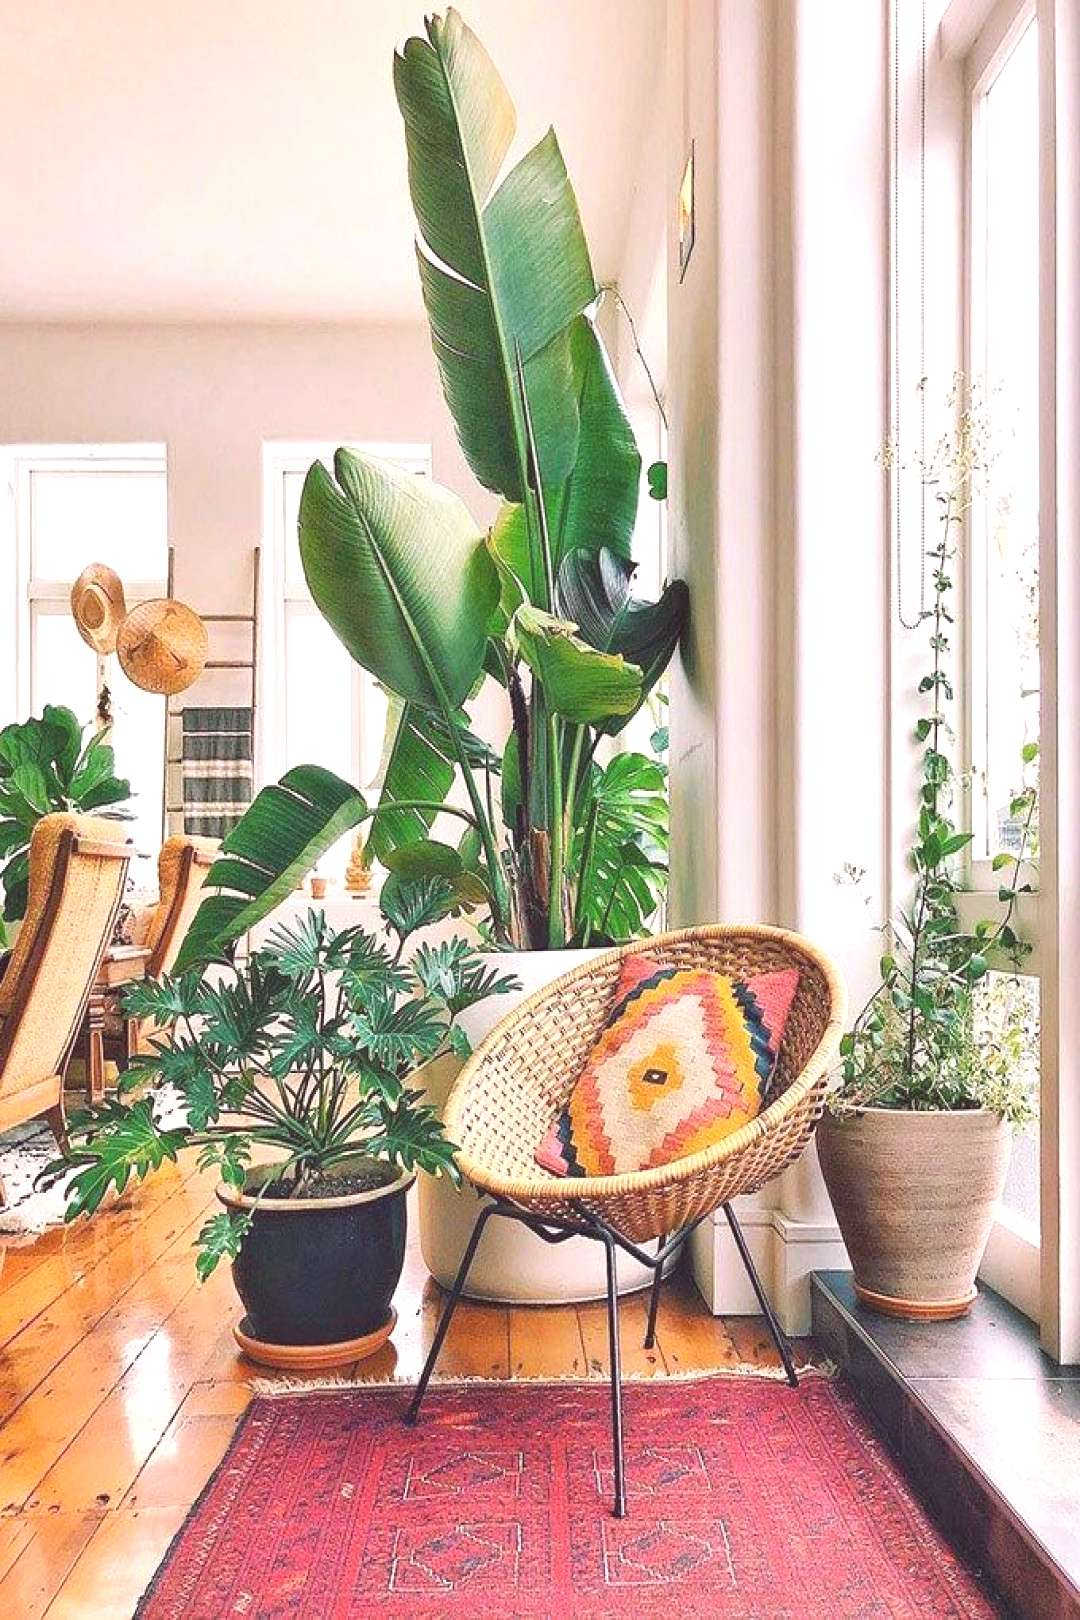 Boho Home Decor 11 Tips That Show You How To Pull It Off | Posh Pennies - -